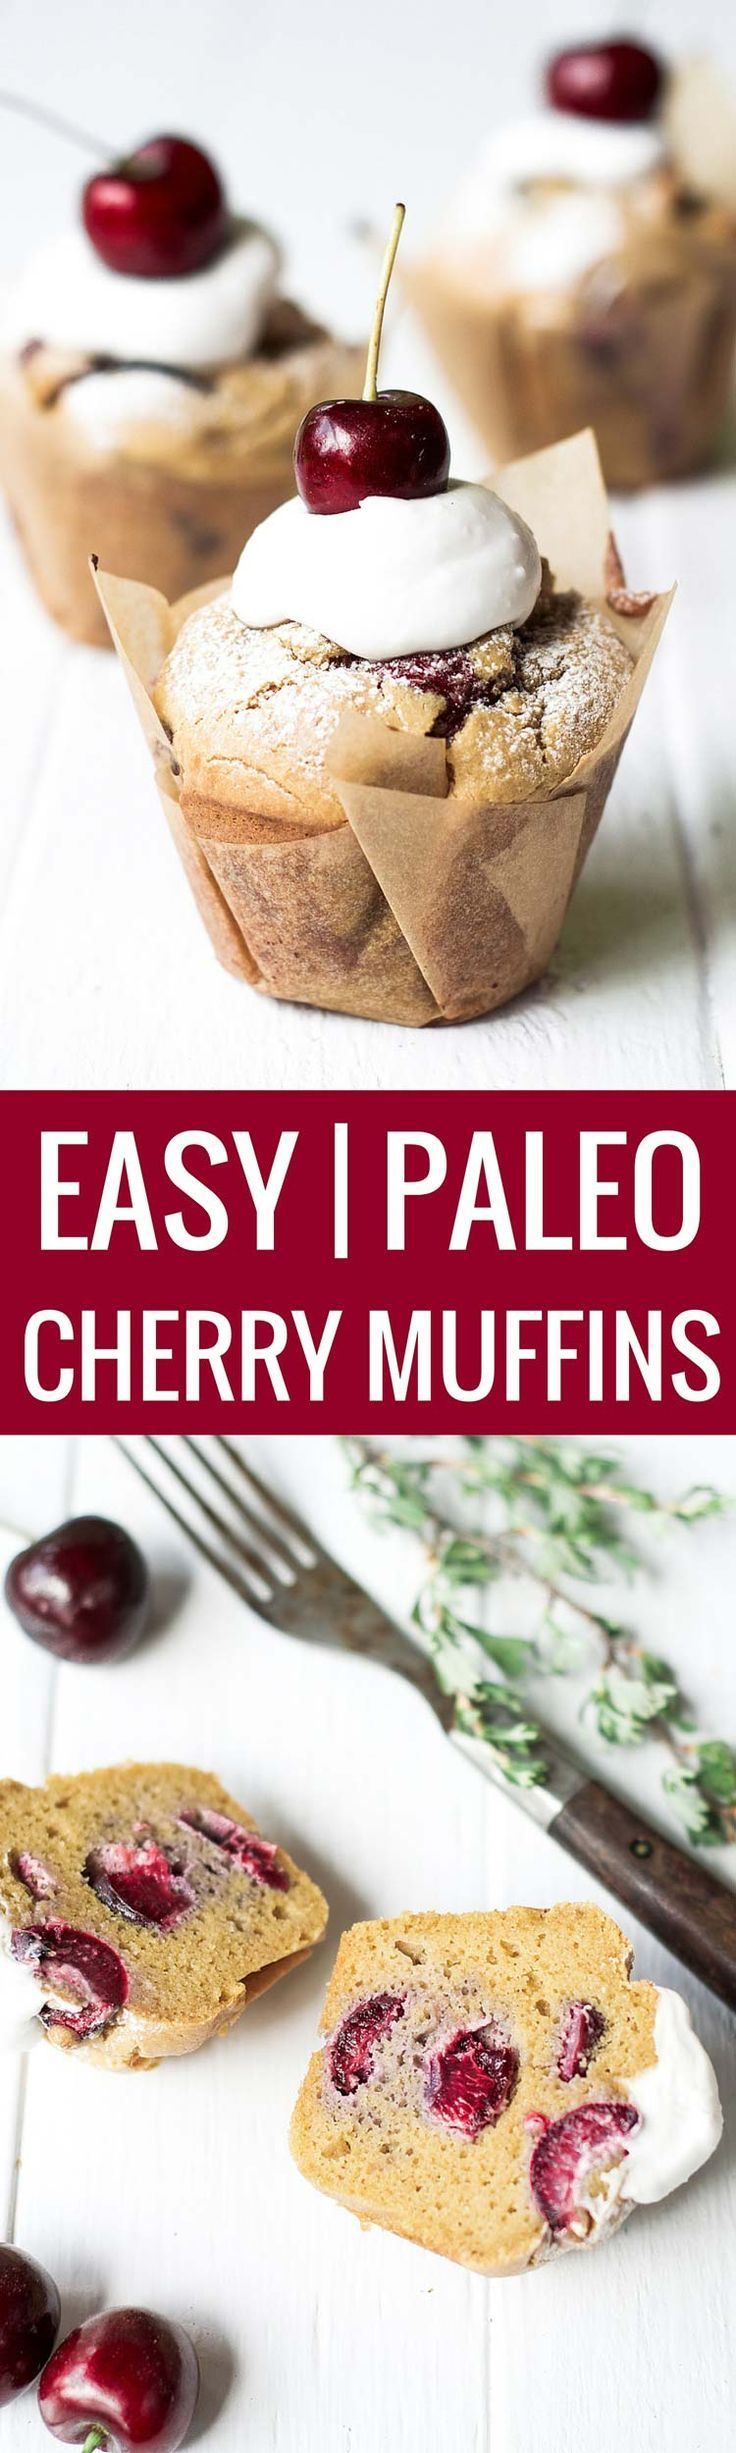 These light and fluffy cherry muffins are paleo and gluten free! Deliciously…